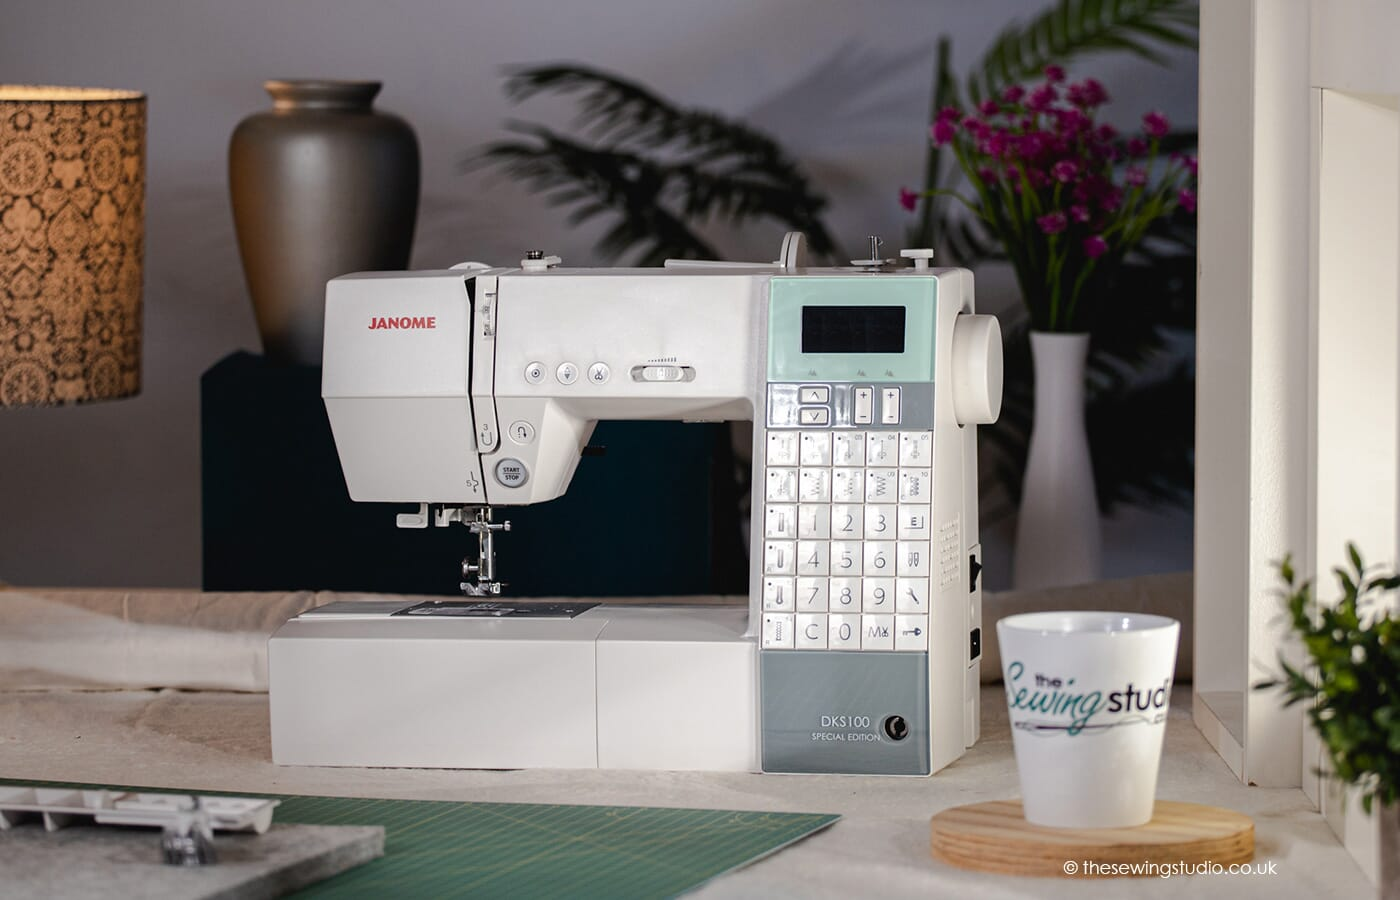 Janome DKS100 Sewing Machine in a Sewing Room